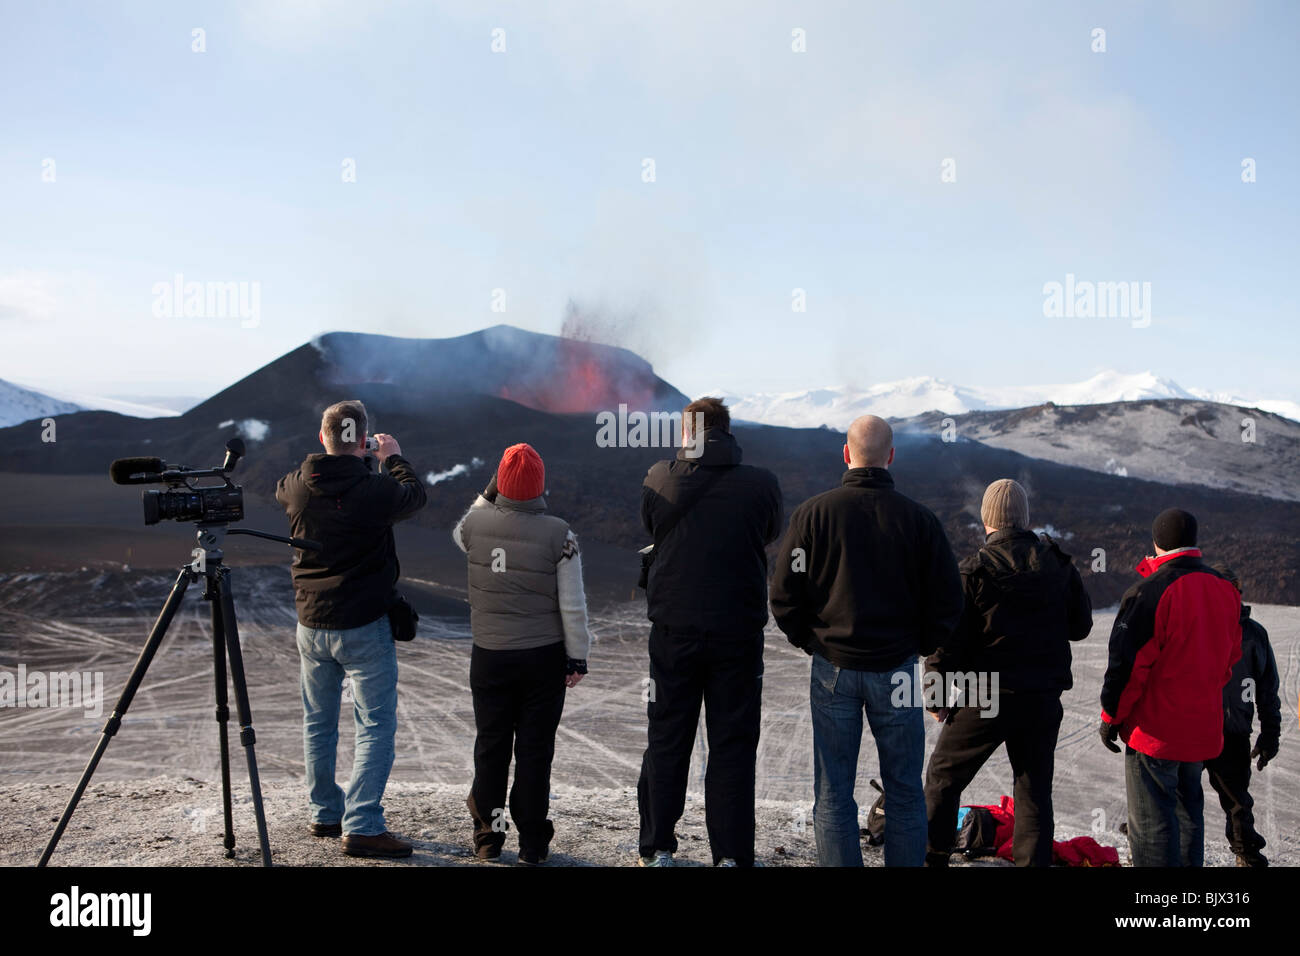 group of people watching the volcanic eruptionat Fimmvorduhals in Eyjafjallajokull, Iceland - - Stock Image